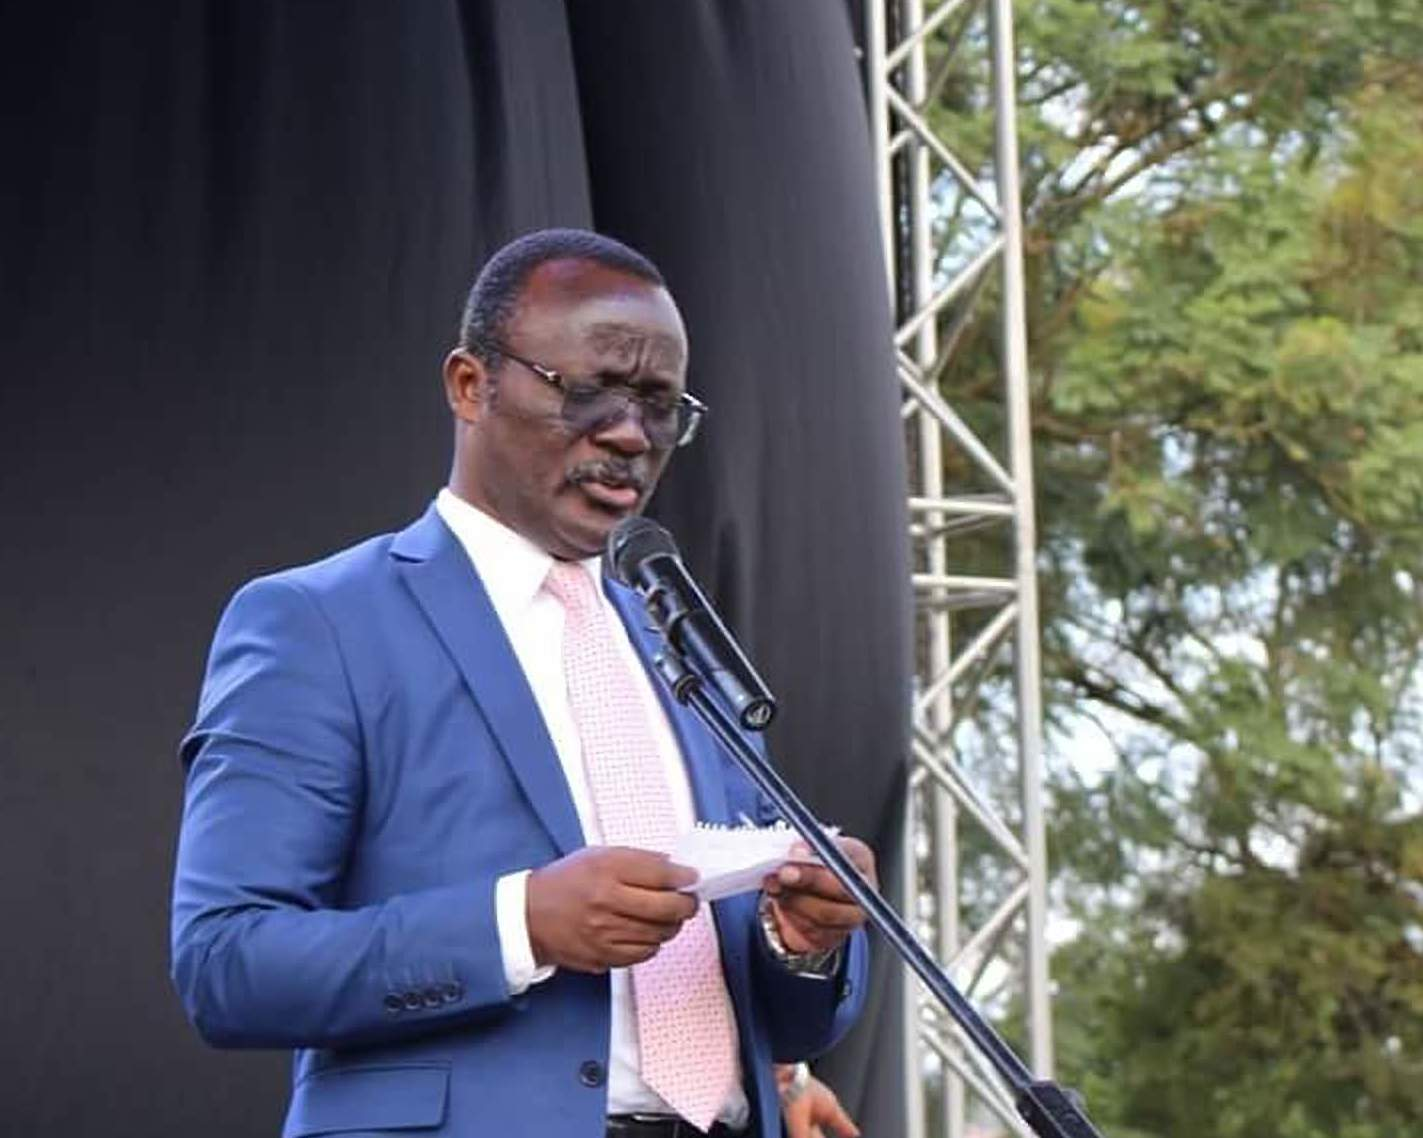 NWSC Managing Director, Dr. Mugisha Silver speaking at a function recently. NWSC has unveiled hi-tech systems to